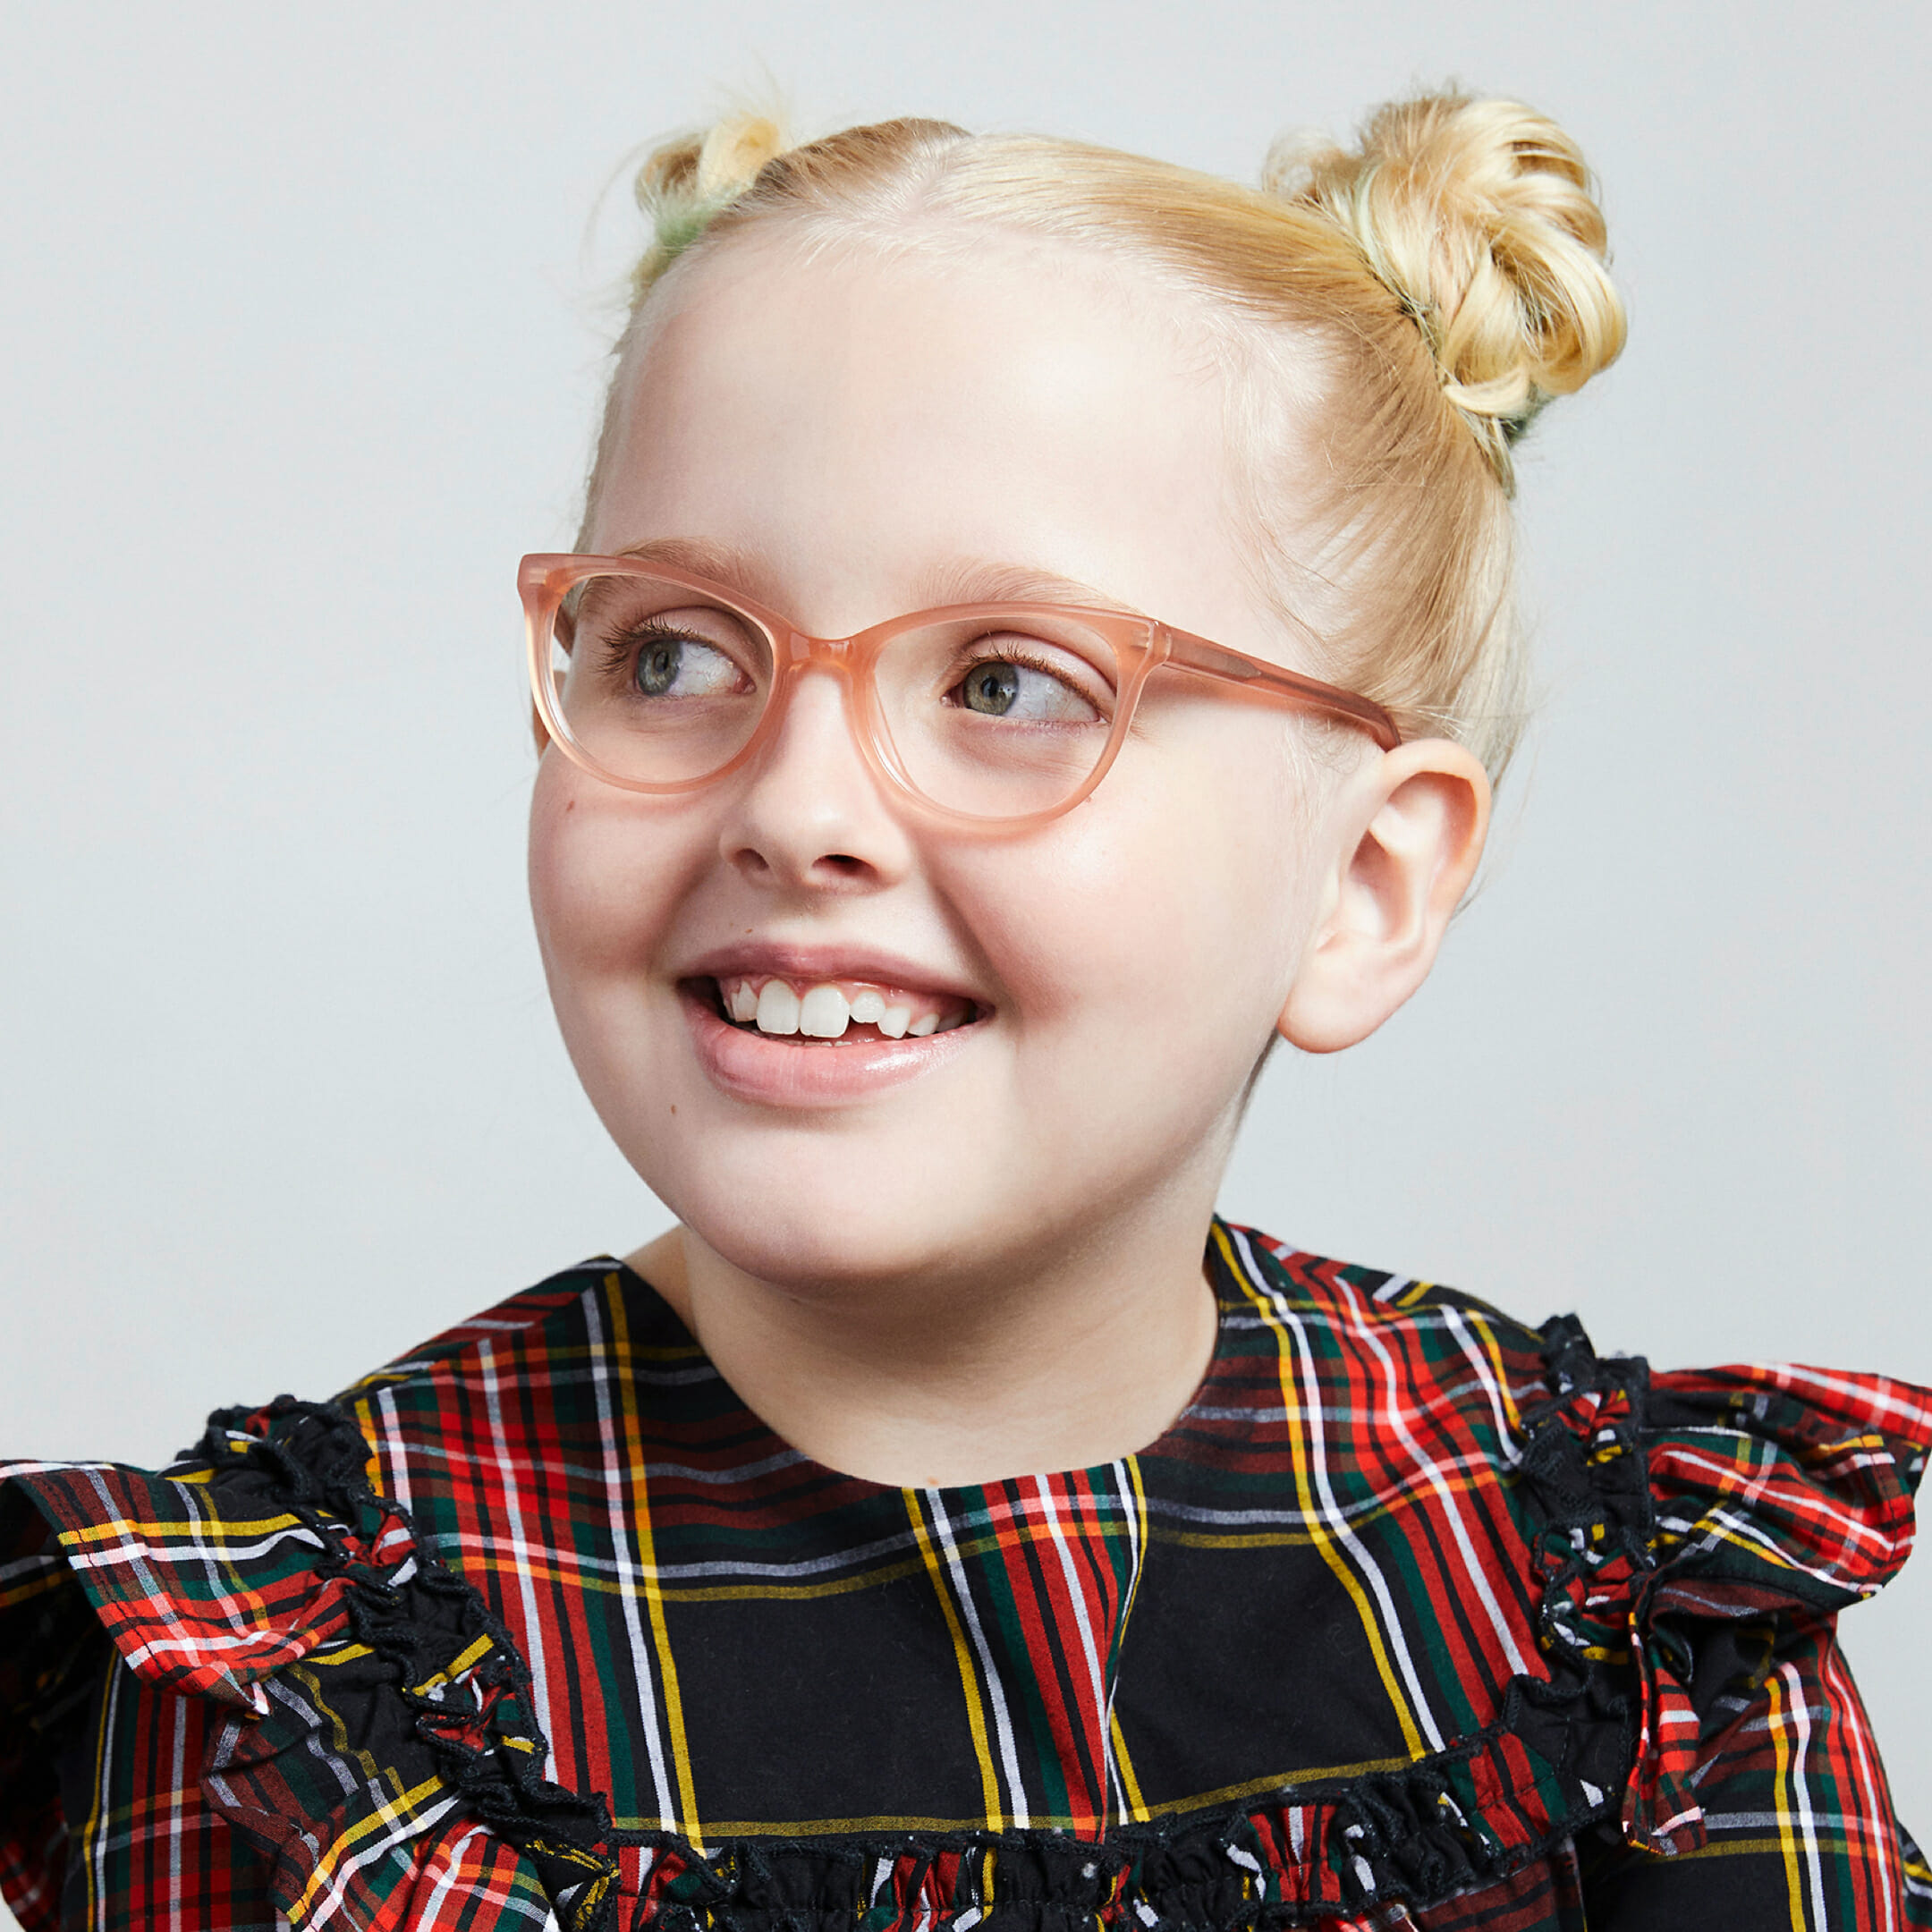 A girl in a dress wearing Warby Parker glasses.